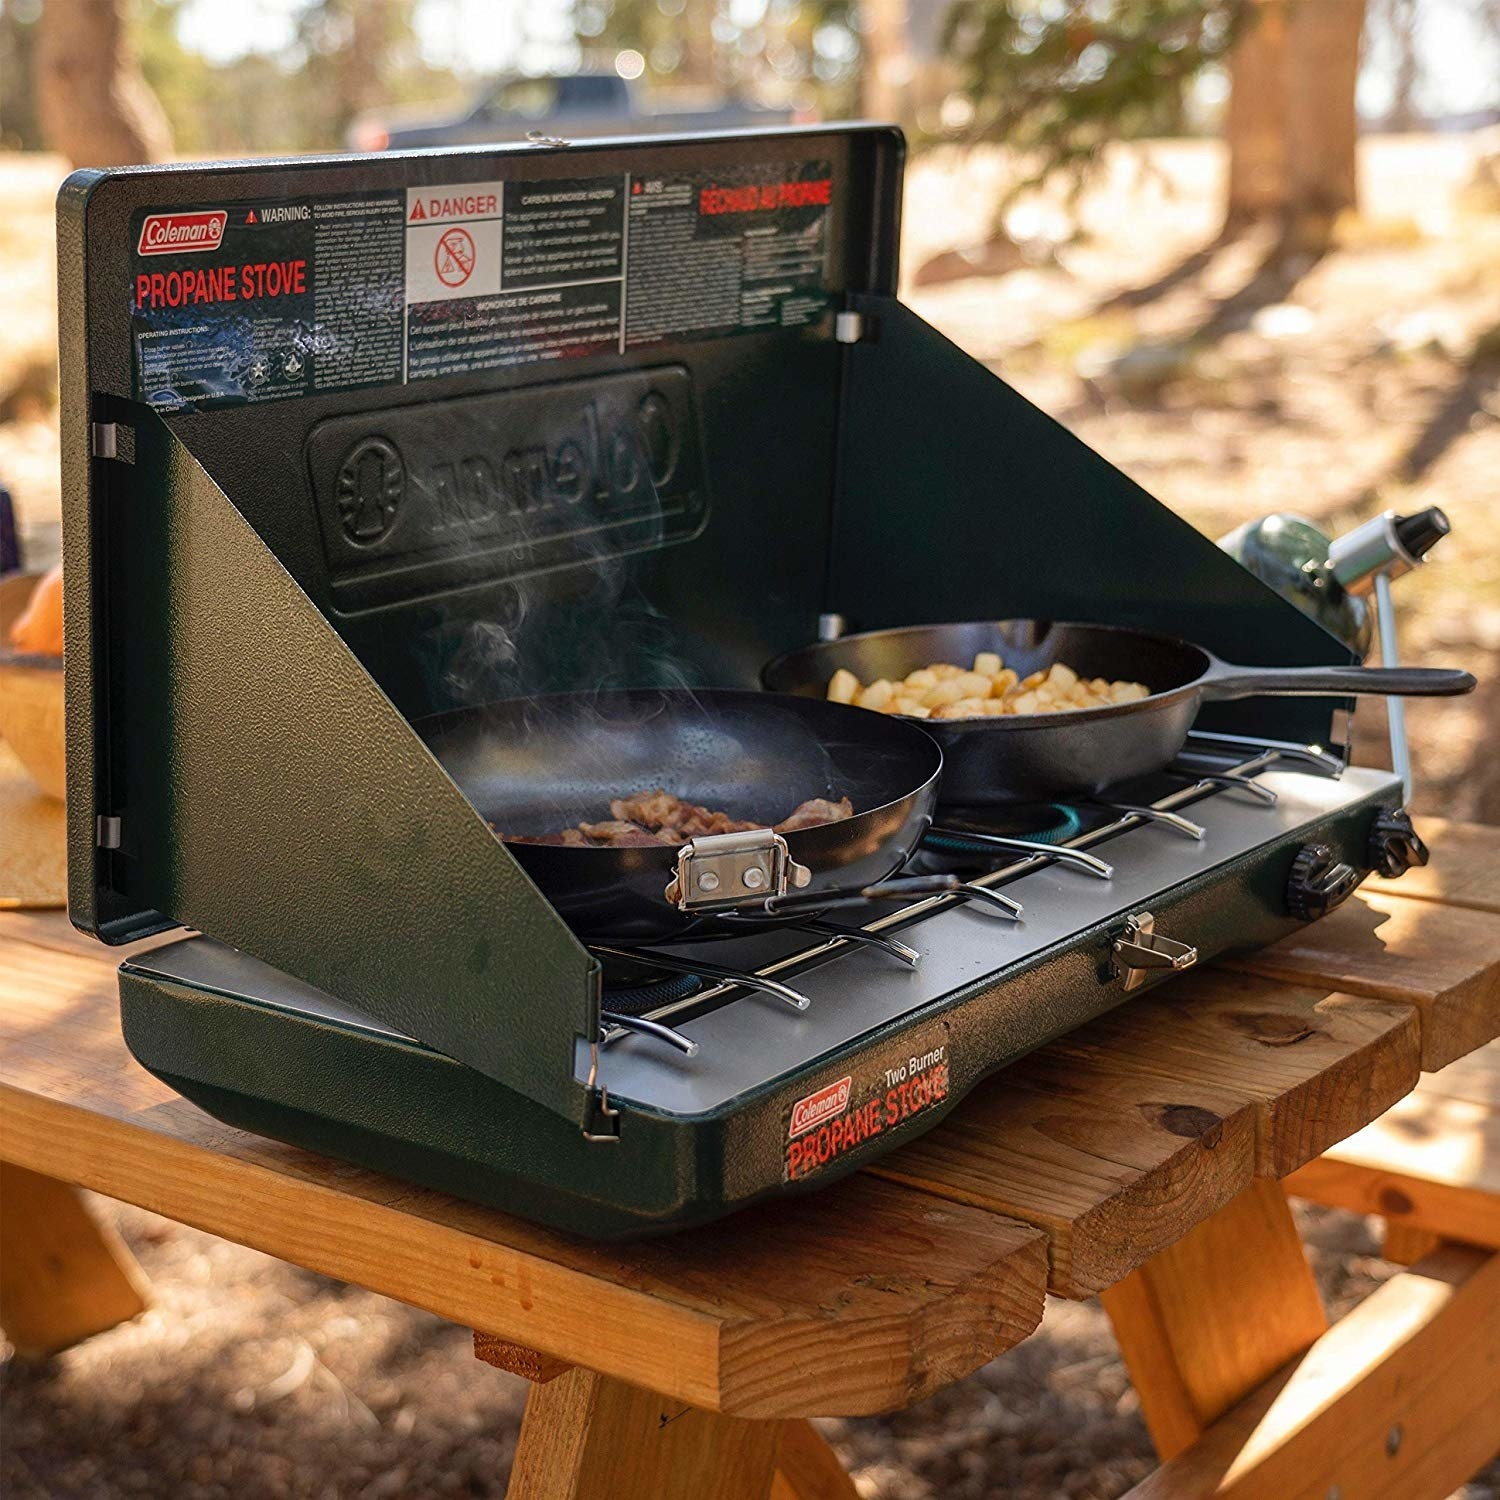 The fold-open stove, set on a picnic table, cooking bacon in one skillet and potatoes and the other